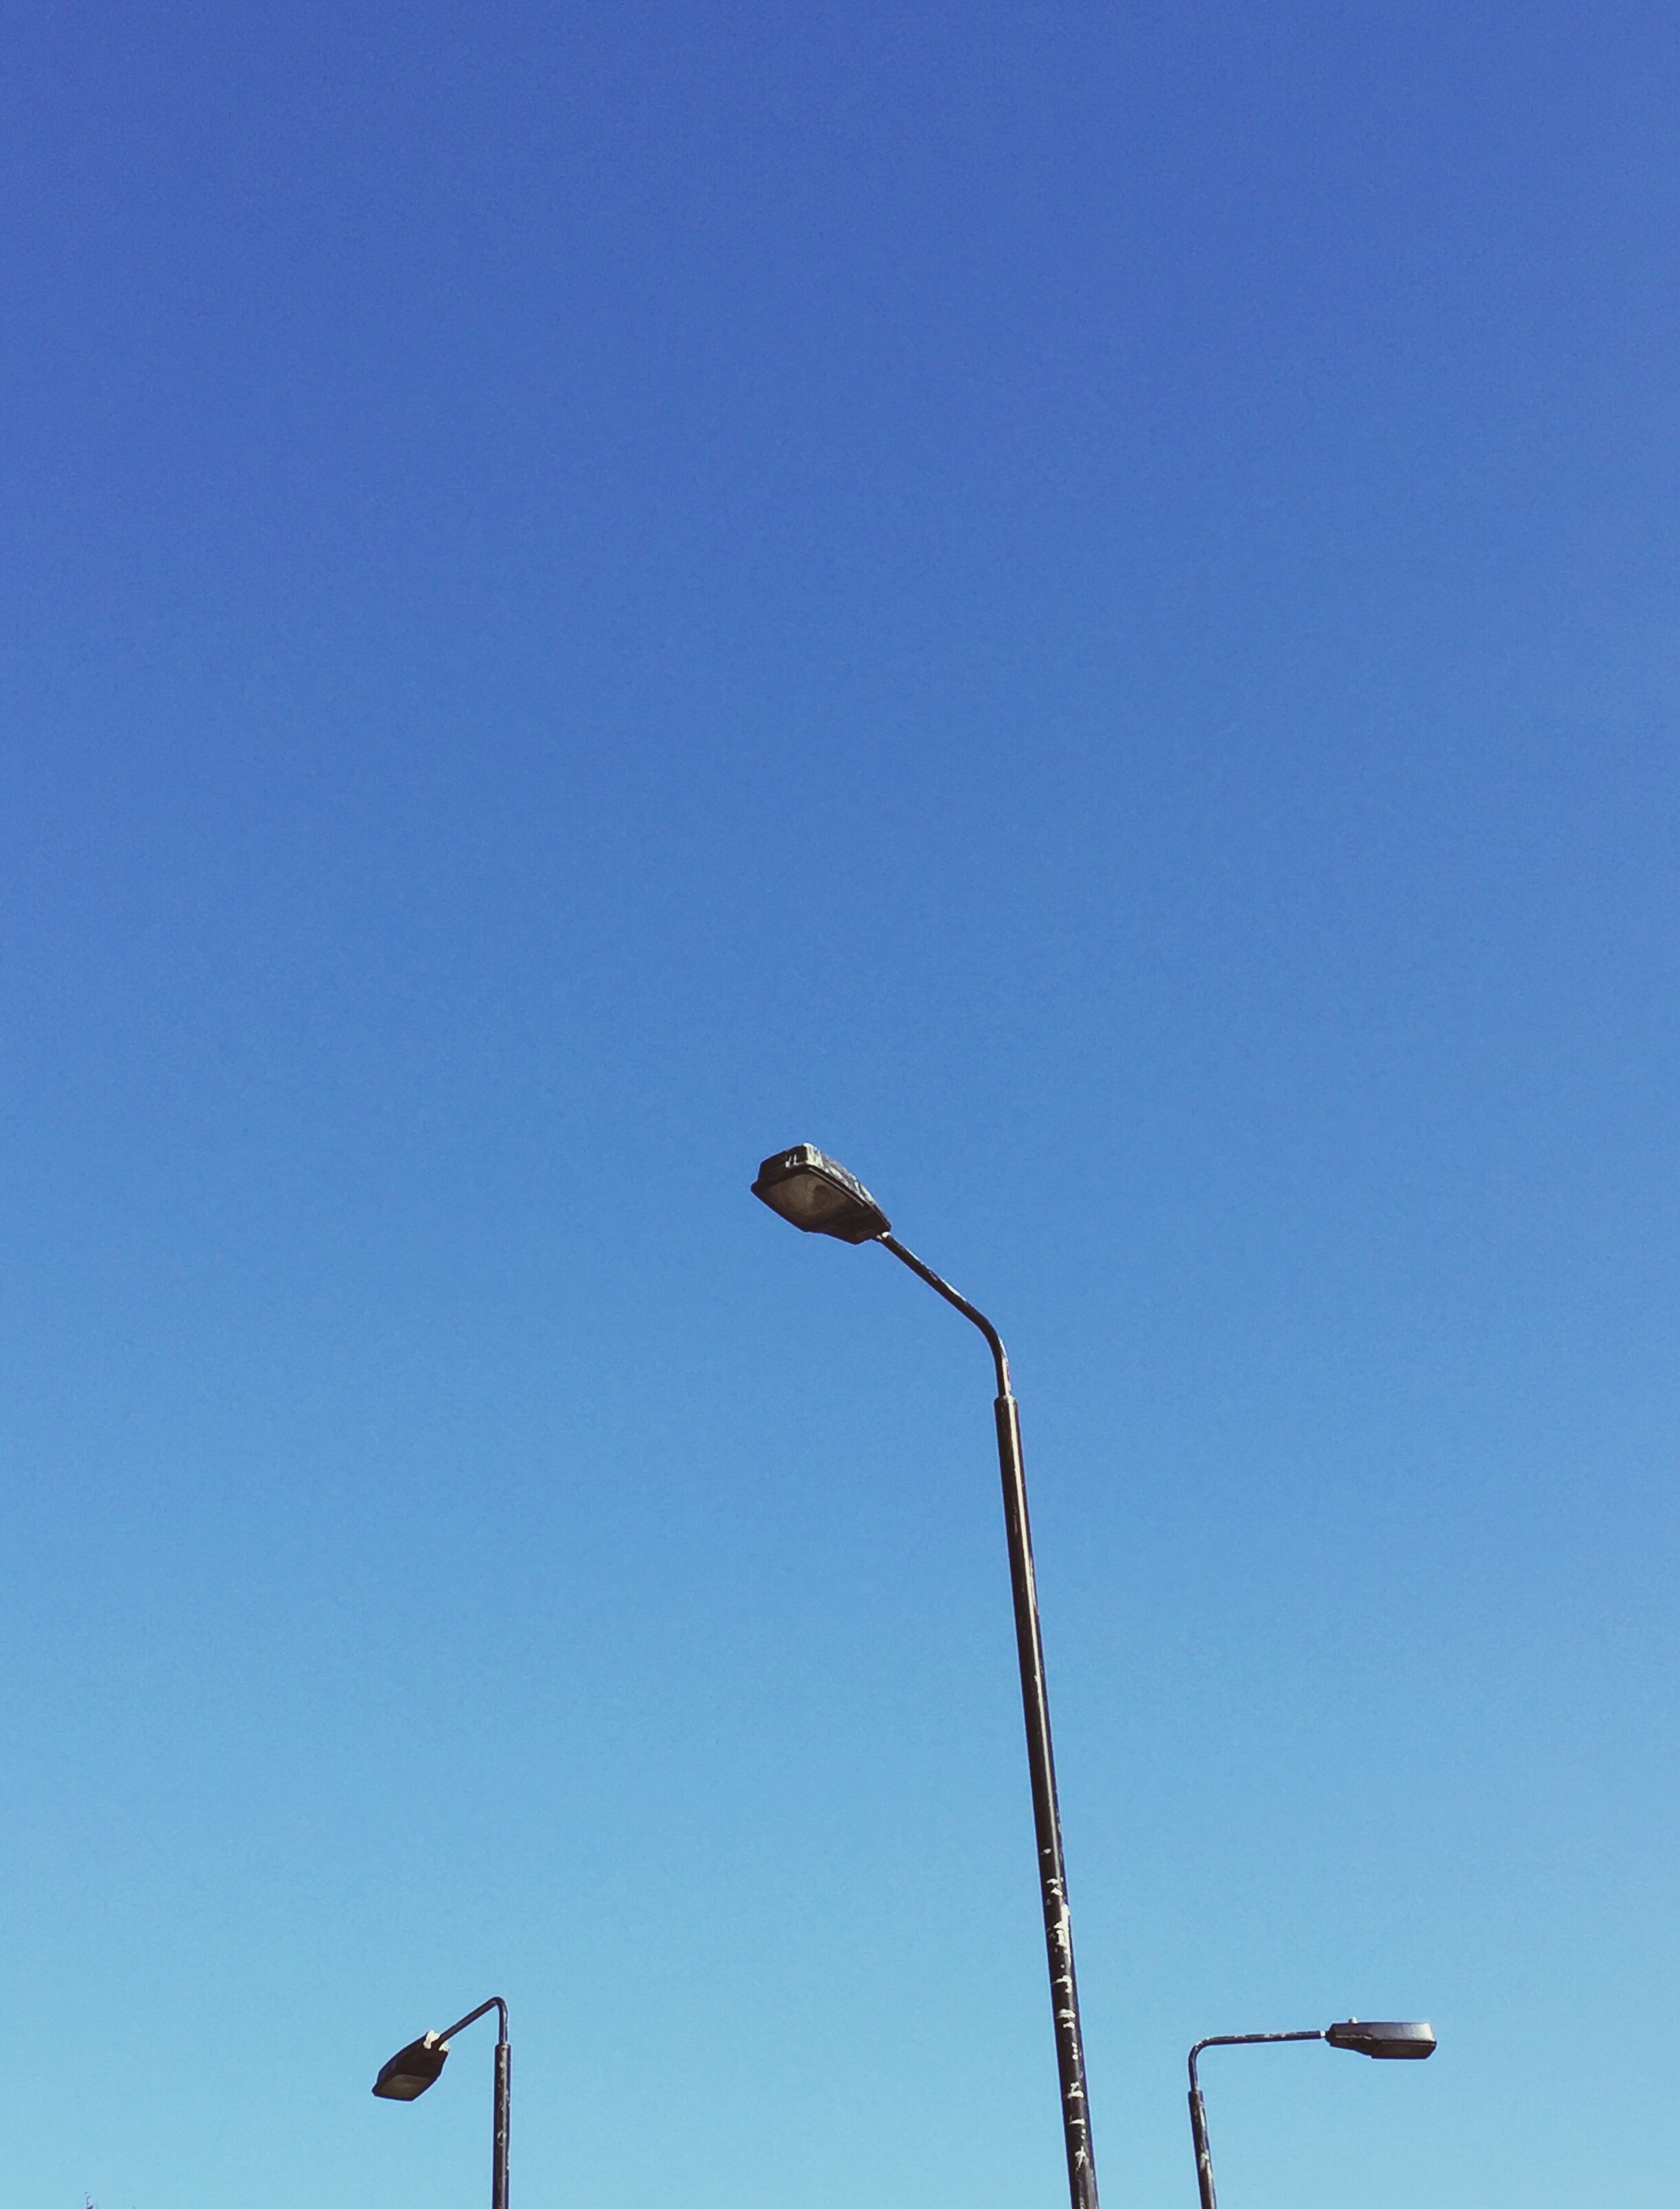 low angle view, street light, copy space, blue, clear sky, lighting equipment, outdoors, day, nature, electric light, high section, tranquility, scenics, no people, beauty in nature, tranquil scene